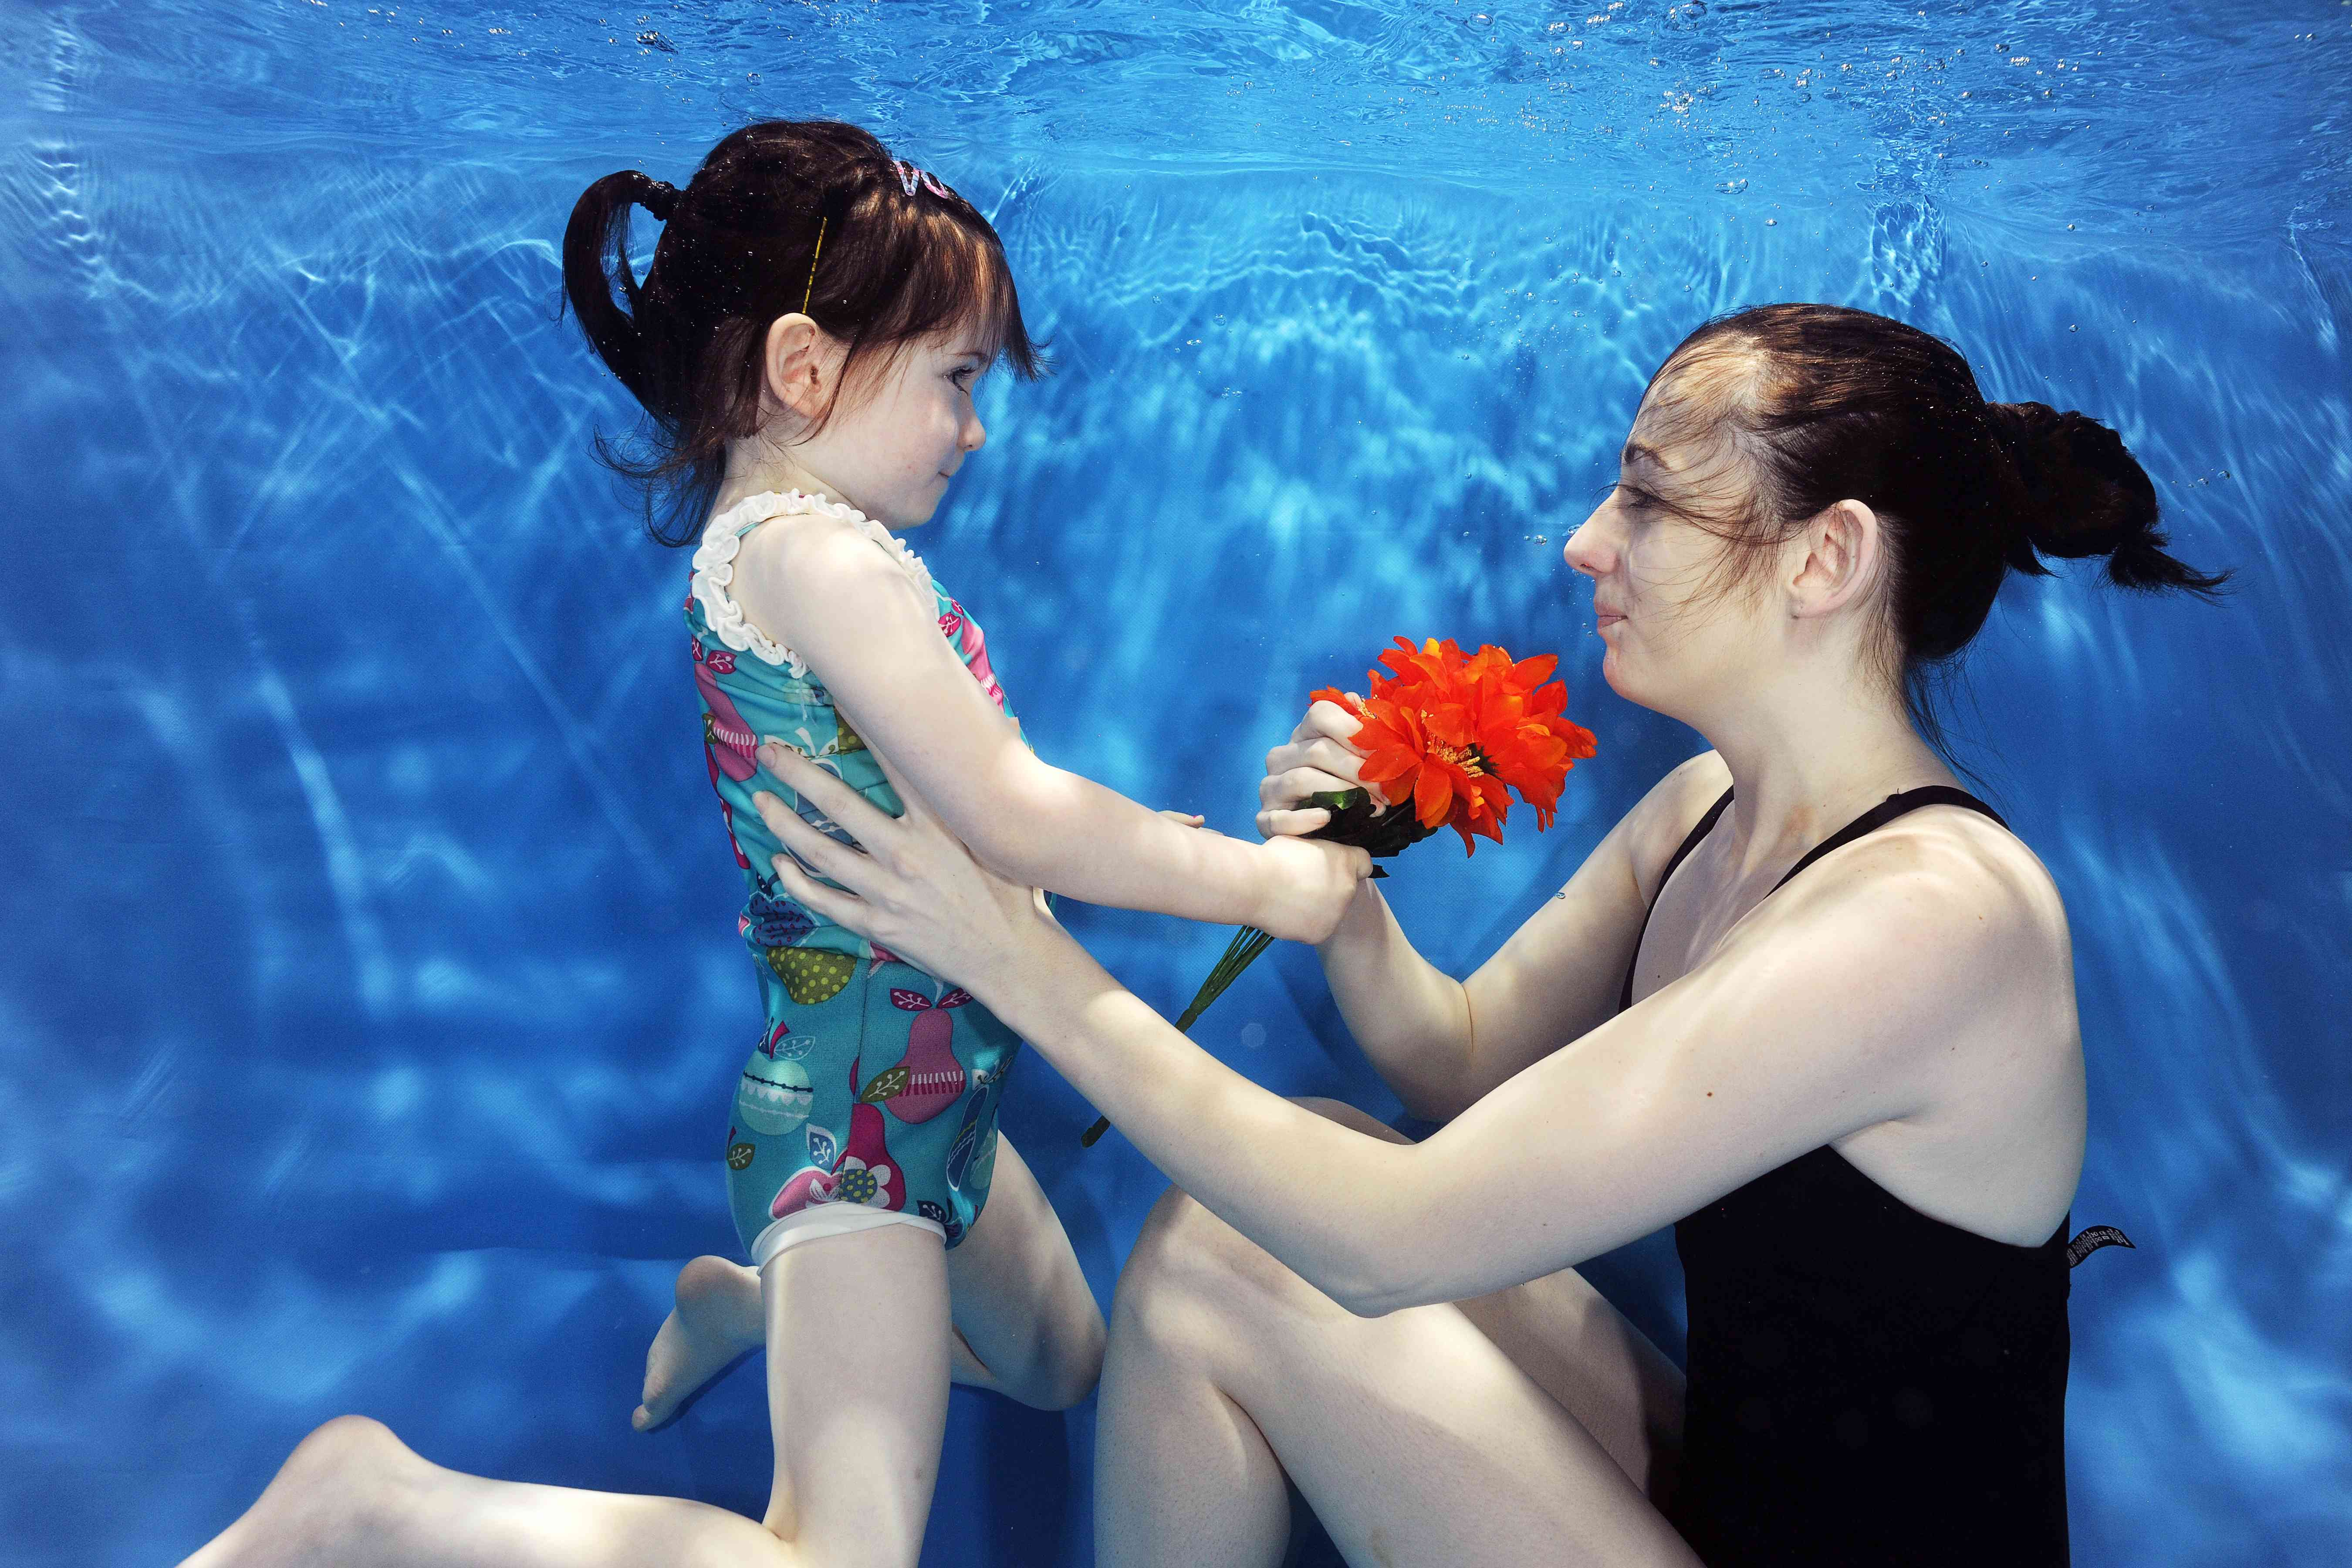 Babies swimming underwater inspiration photos - Aoife Fitzgerald Siobhan Fitzgerald Flowers